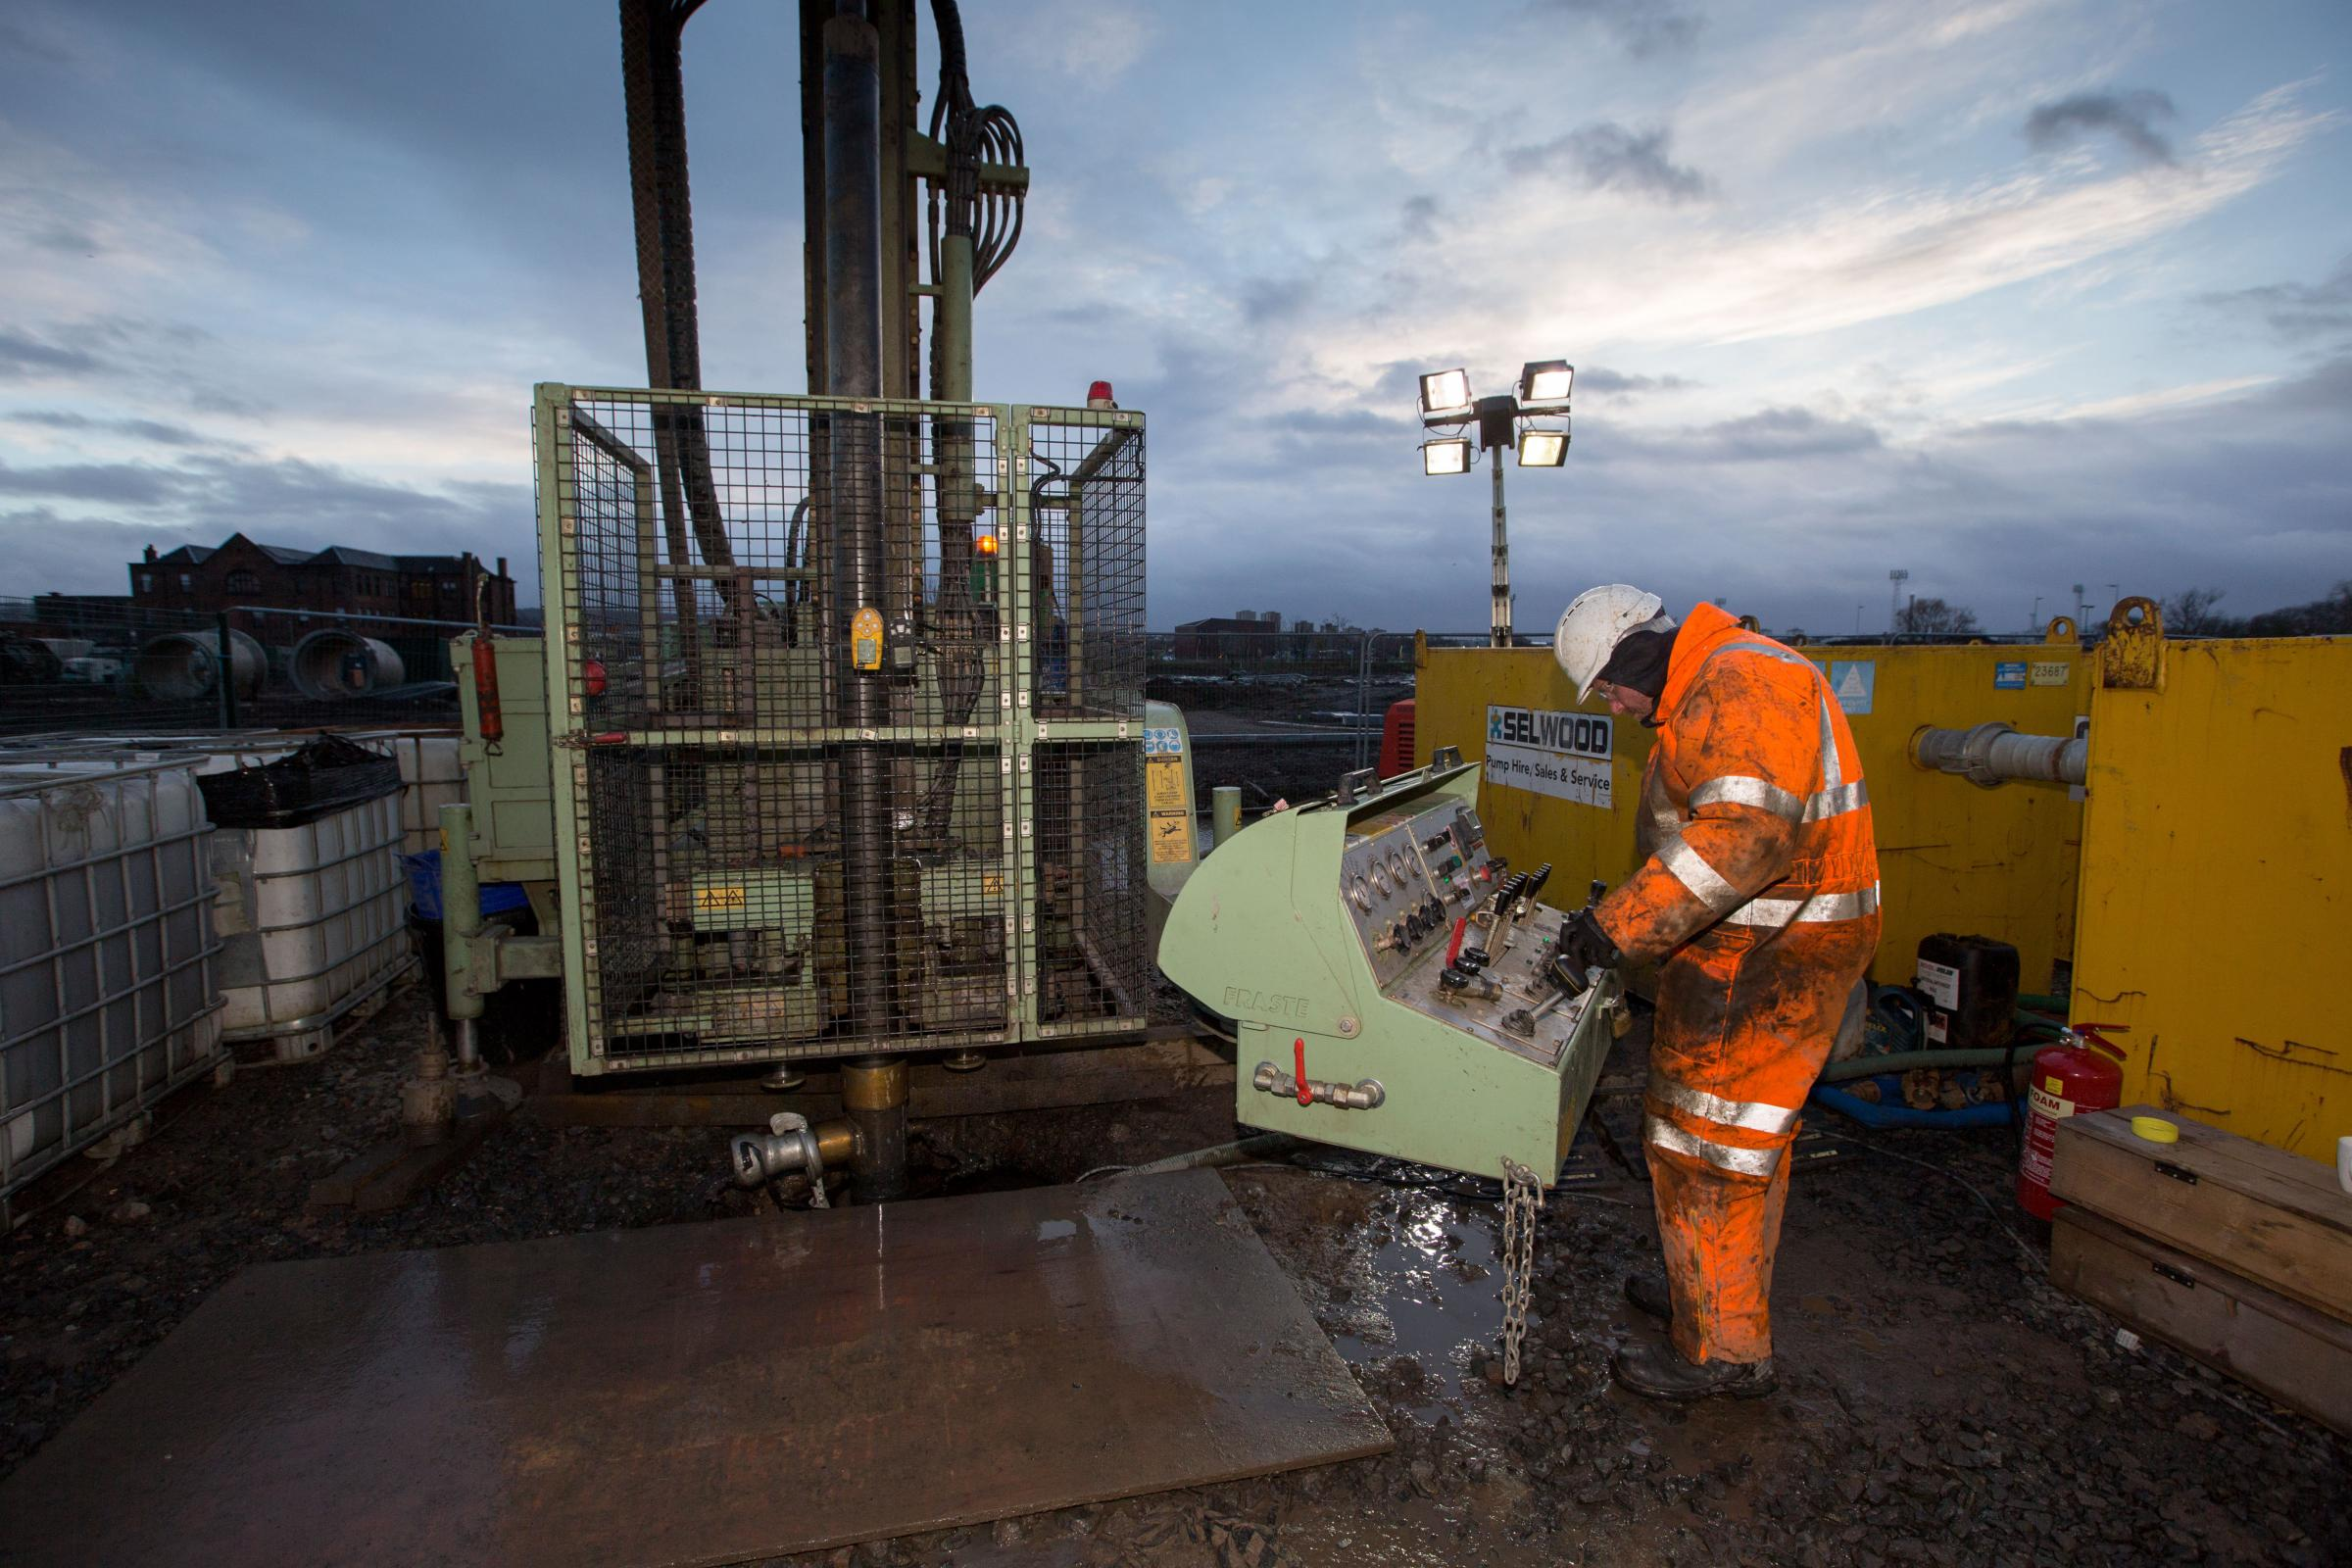 A drilling rig makes a start on the first borehole for the UK Geoenergy Observatories project.